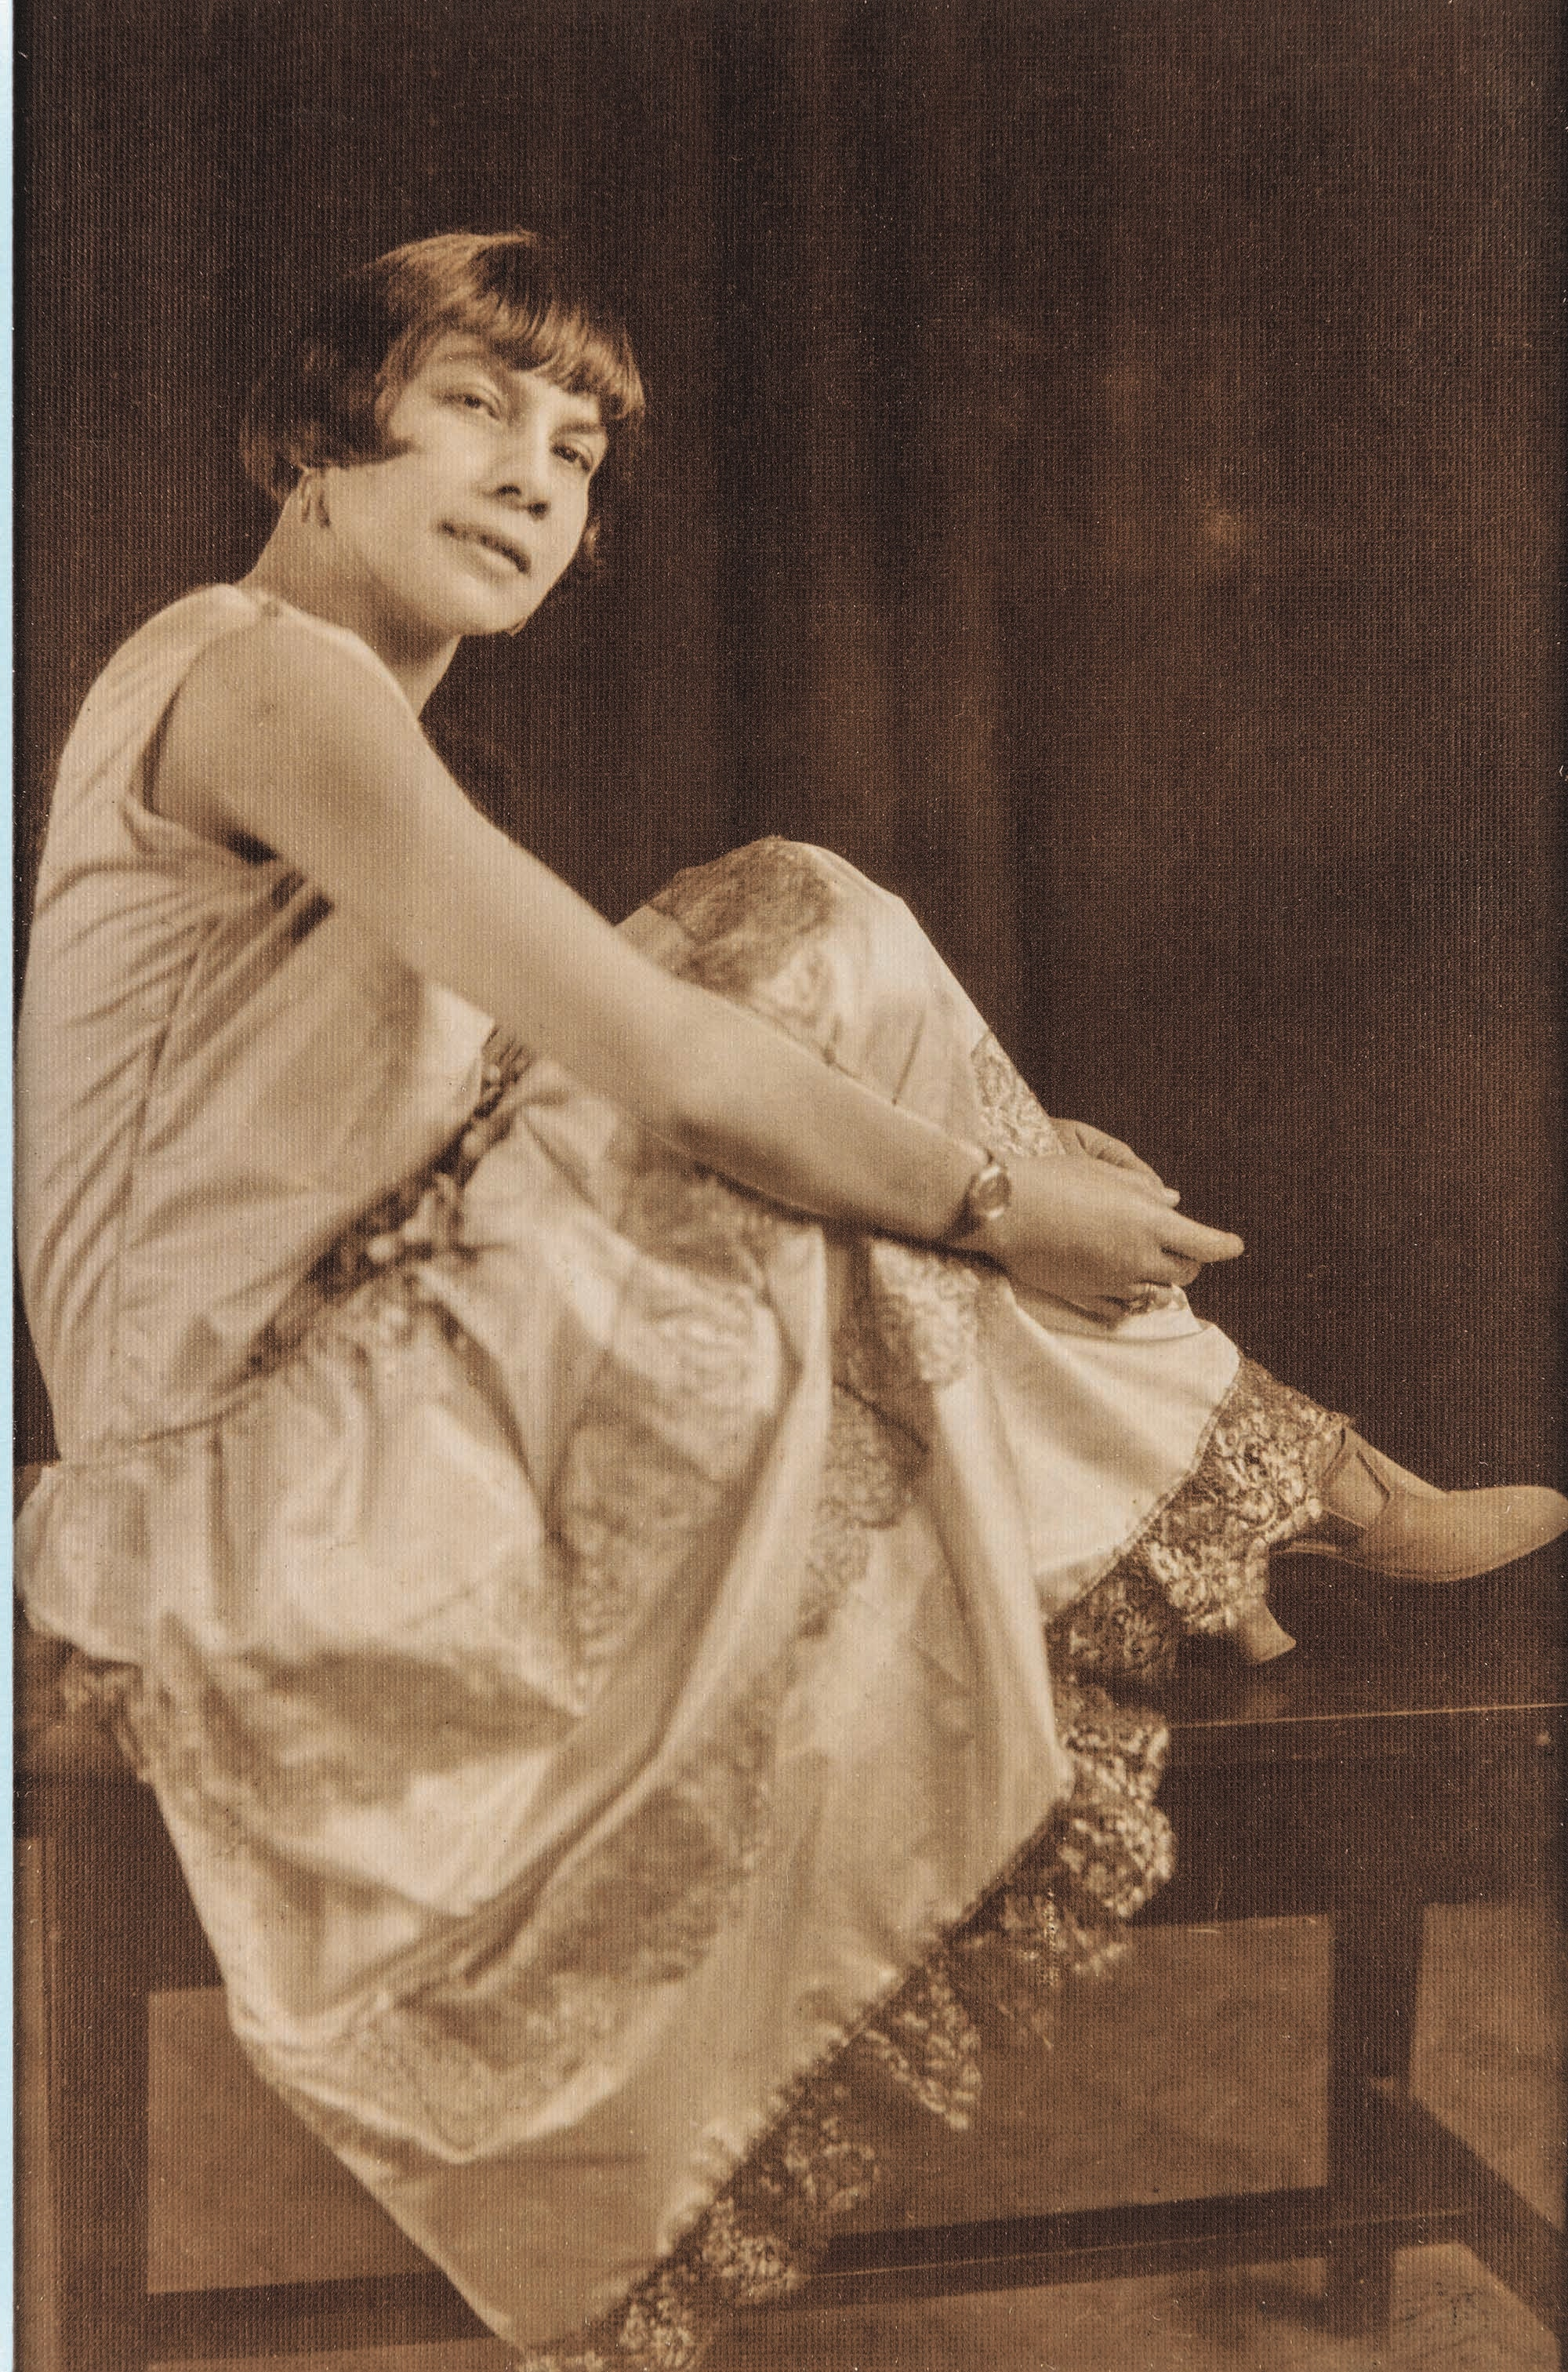 Florestine Perrault Collins, <em>Portrait of Mae Fuller Keller</em>, early 1920s. Gelatin silver print14 x 11 inches. Collection of Dr. Arthé A. Anthony.